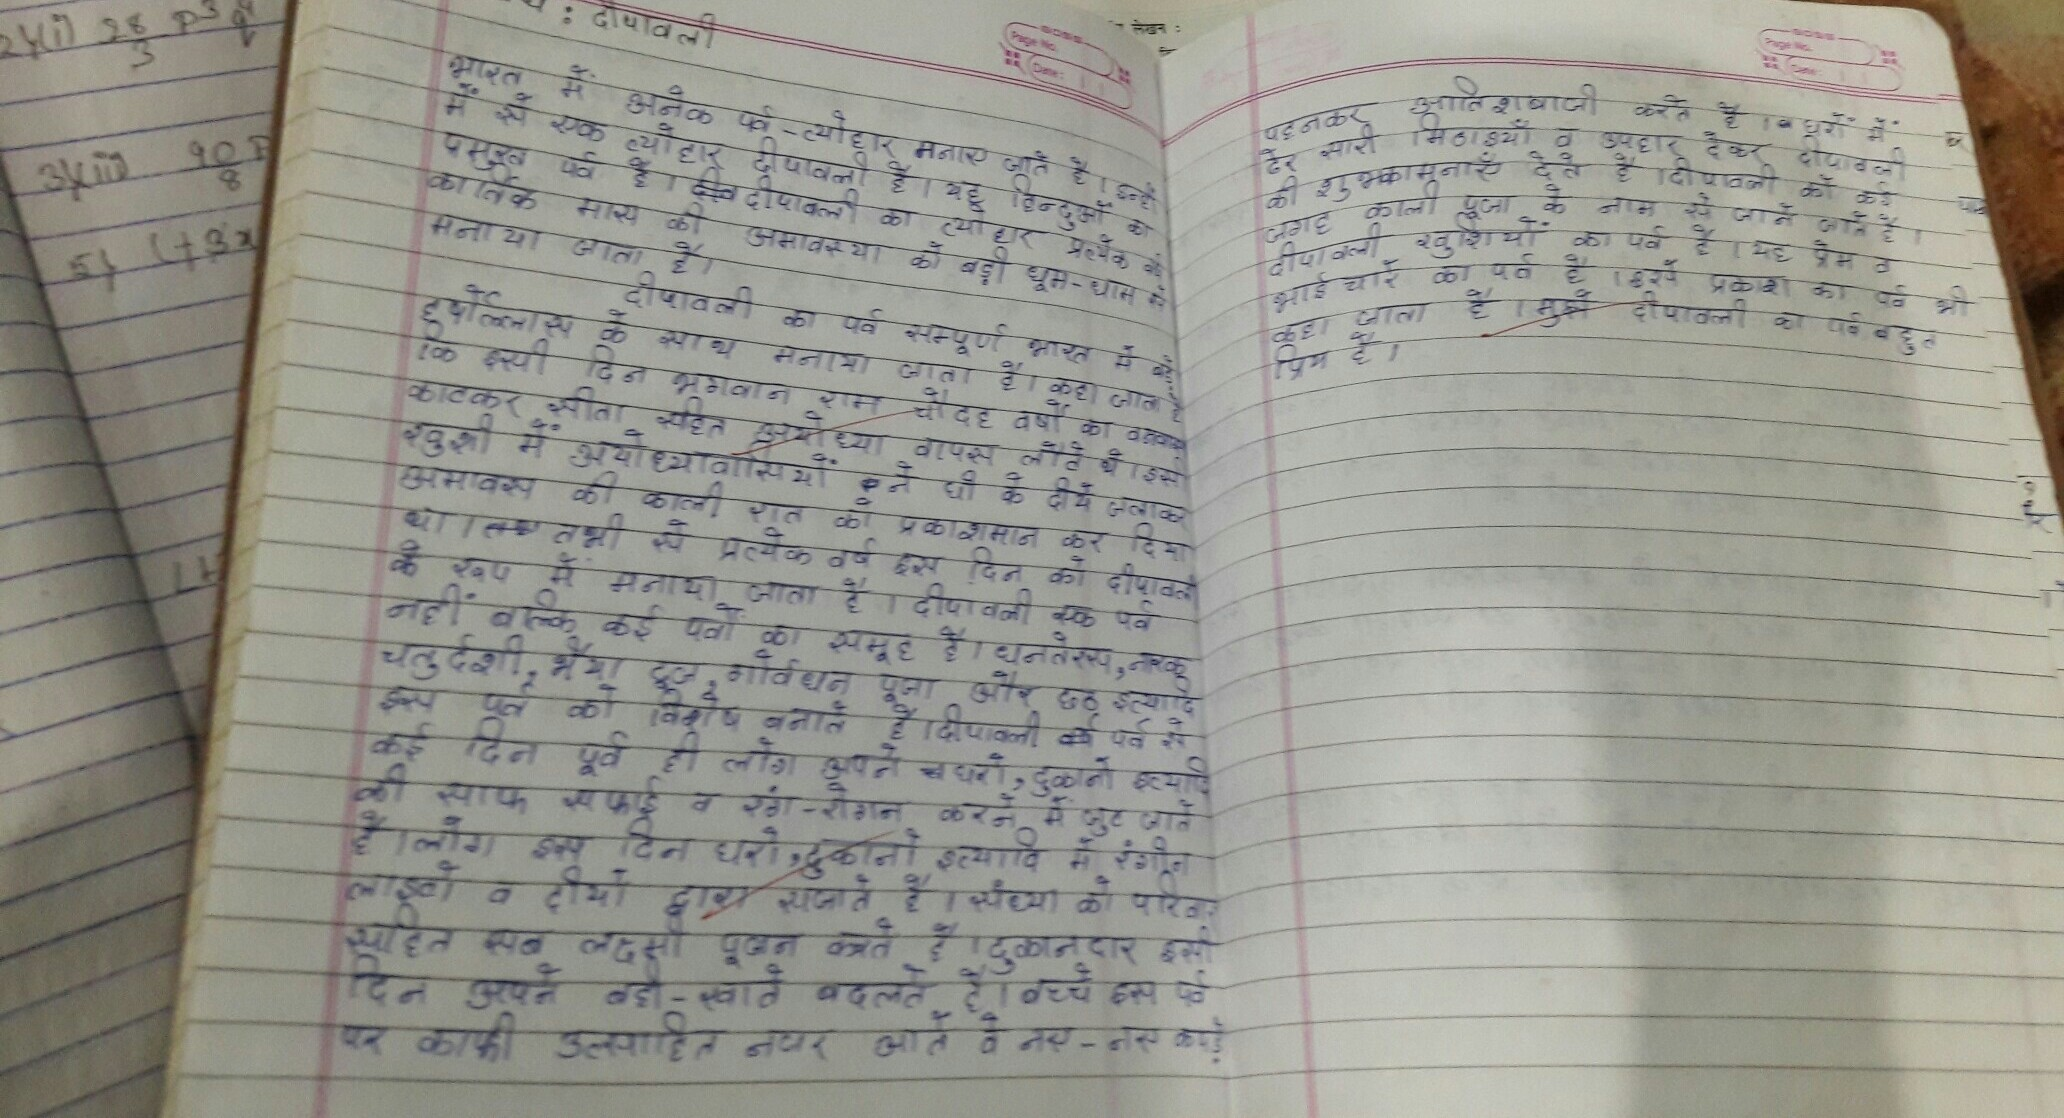 Diwali essay in hindi 100 words - Brainly in